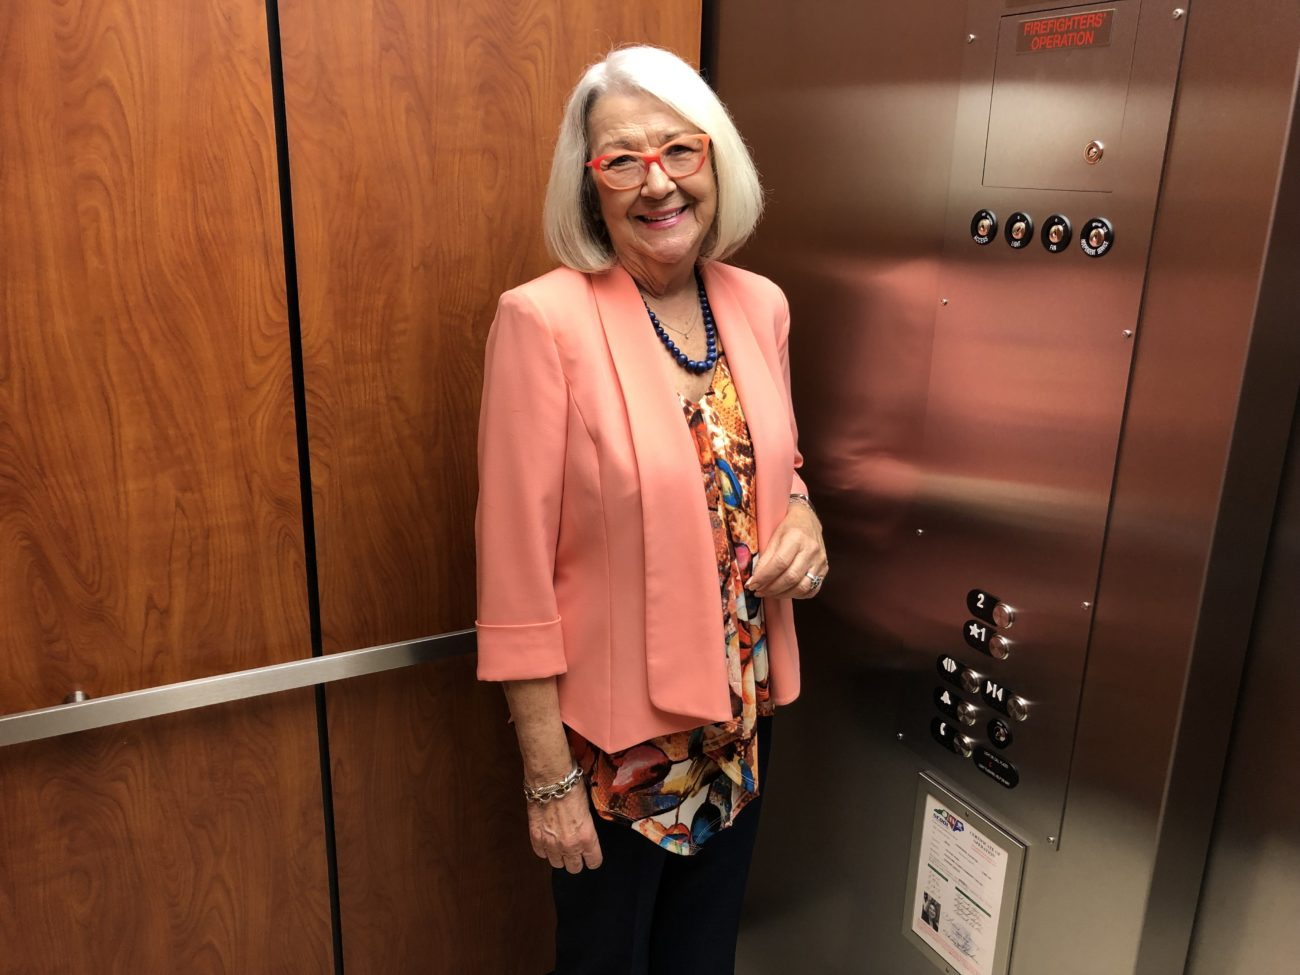 How I Work: 17 questions with Cherie Berry, the elevator lady